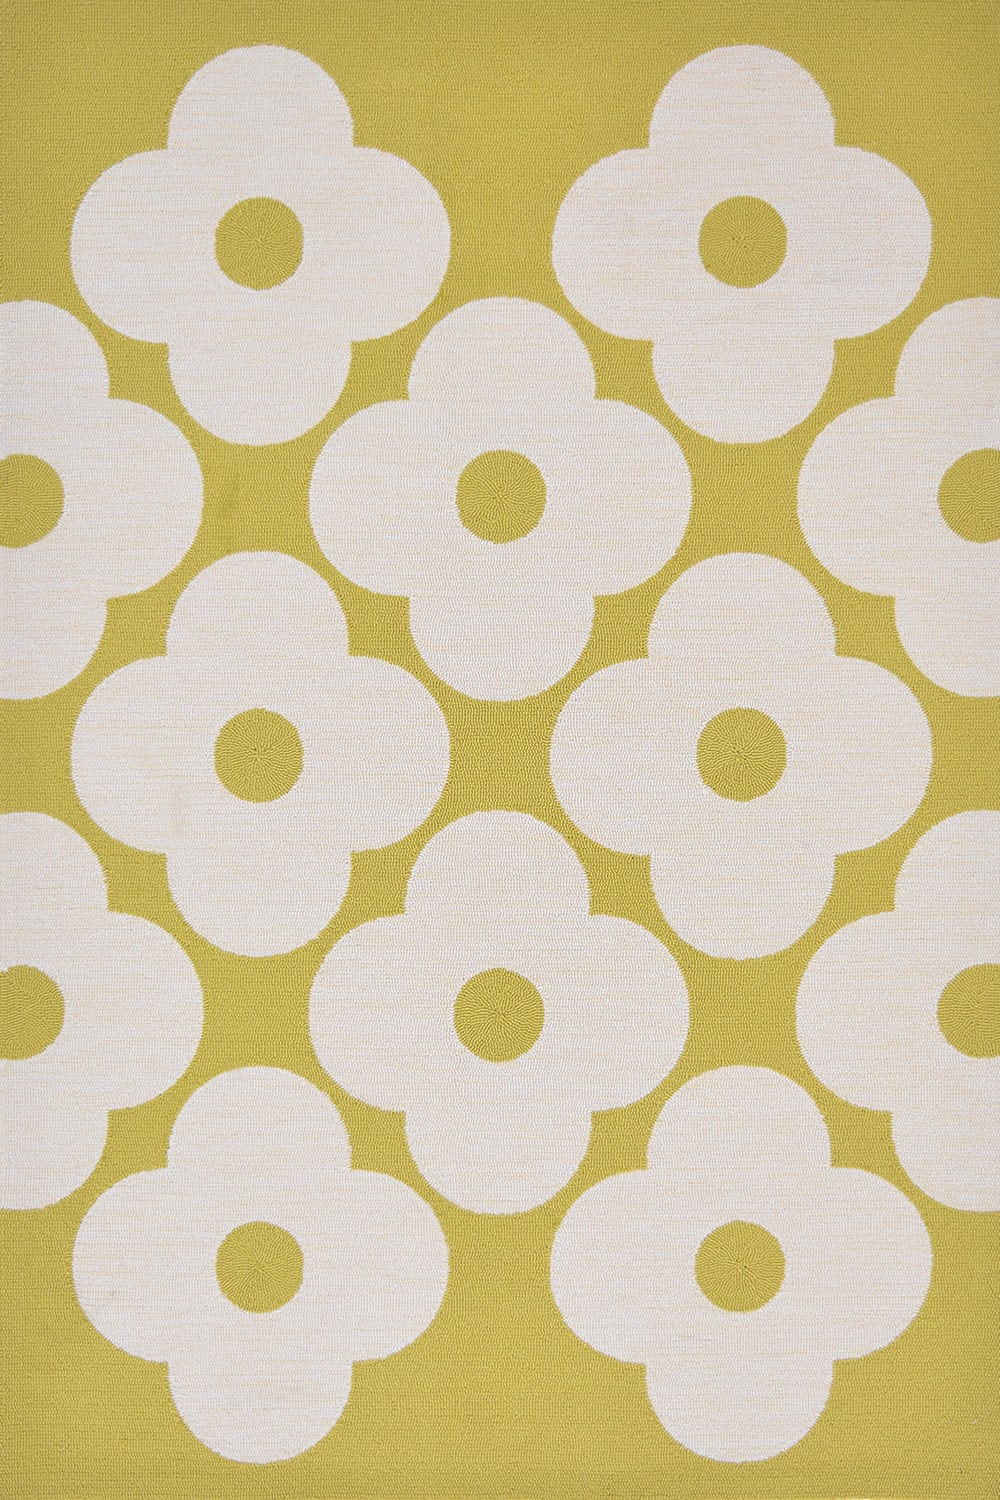 Χαλί Spot Flower 460806 Yellow-White Orla Kiely 140X200